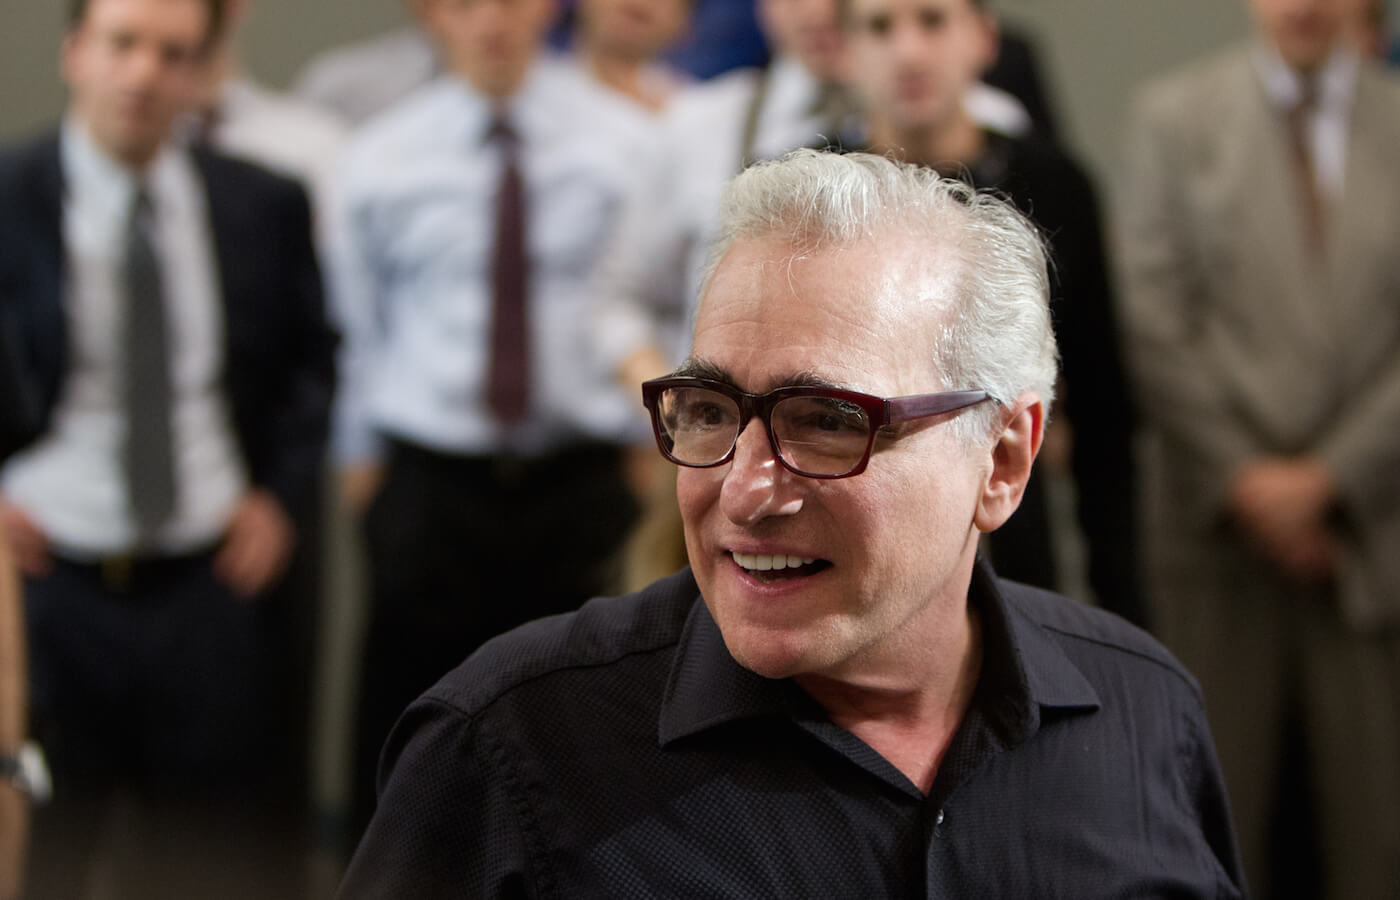 the-wolf-of-wall-street-martin-scorsese.jpg